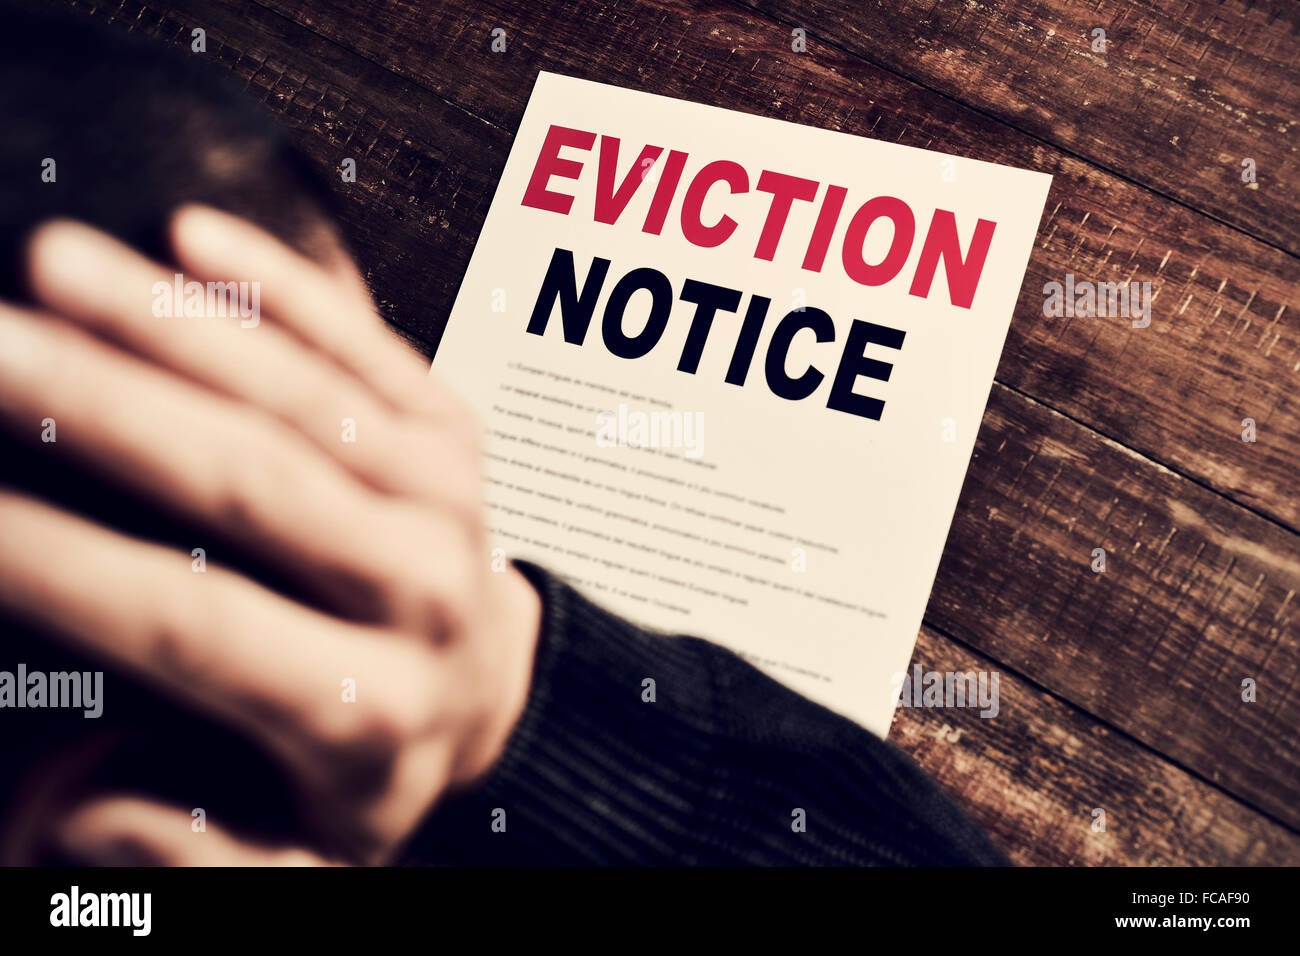 a young caucasian man with his hands in his head concerned because has just received an eviction notice - Stock Image